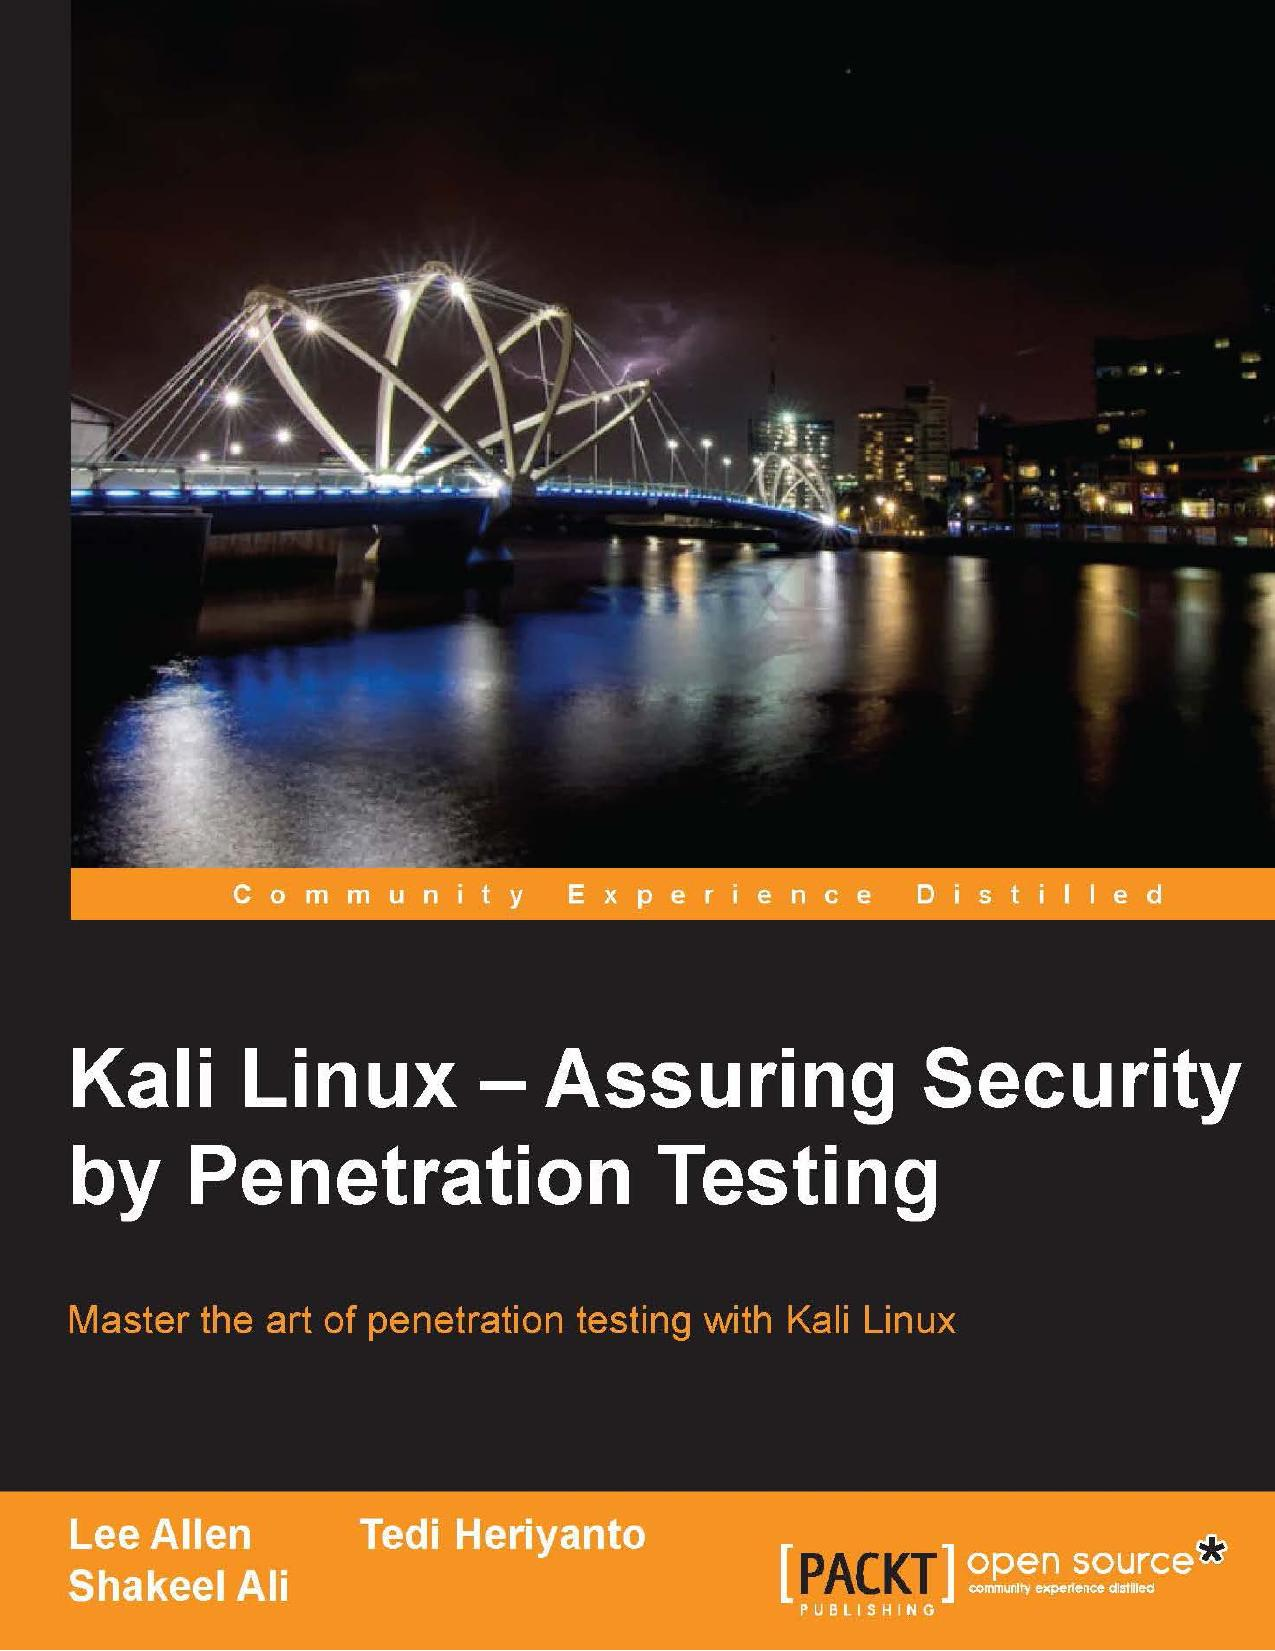 KALI.LINUX.ASSURING.SECURITY.BY.PENETRATION.TESTING.2014